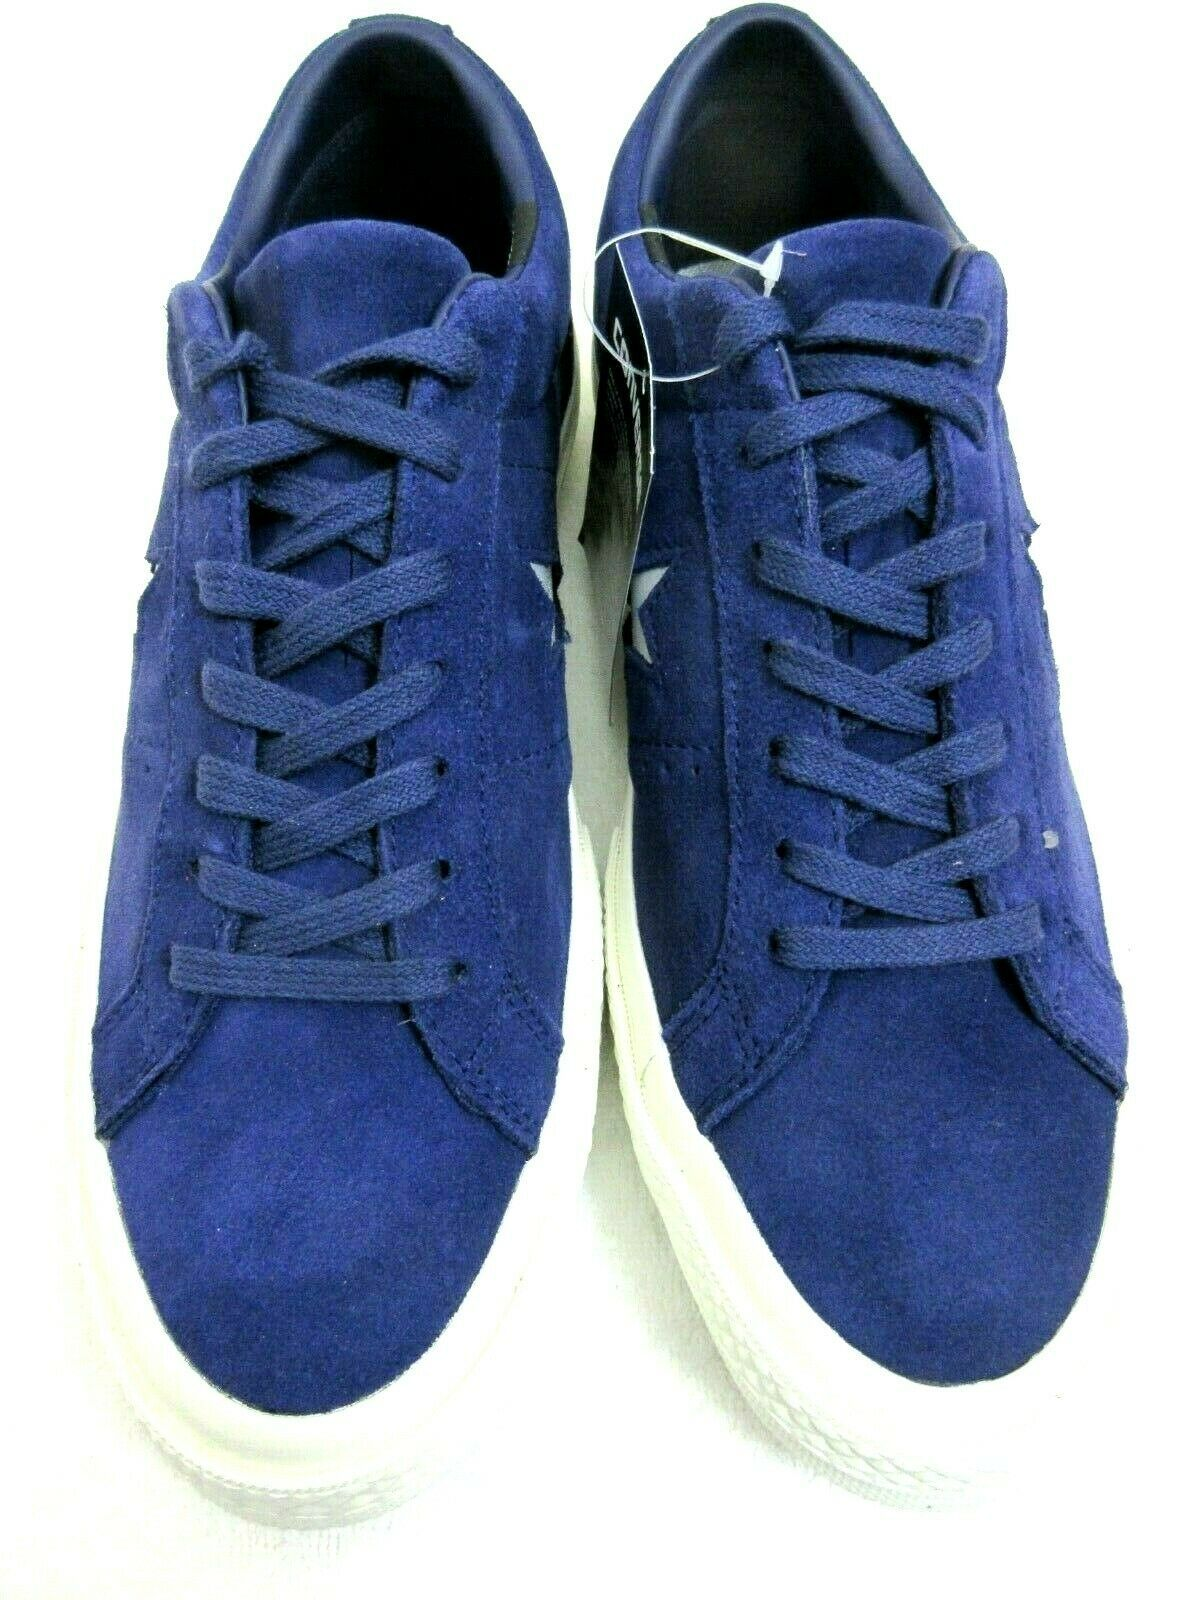 Converse One Star Ox Mens Midnight Indigo Purple Silver Suede Shoes Size 8 New  image 4